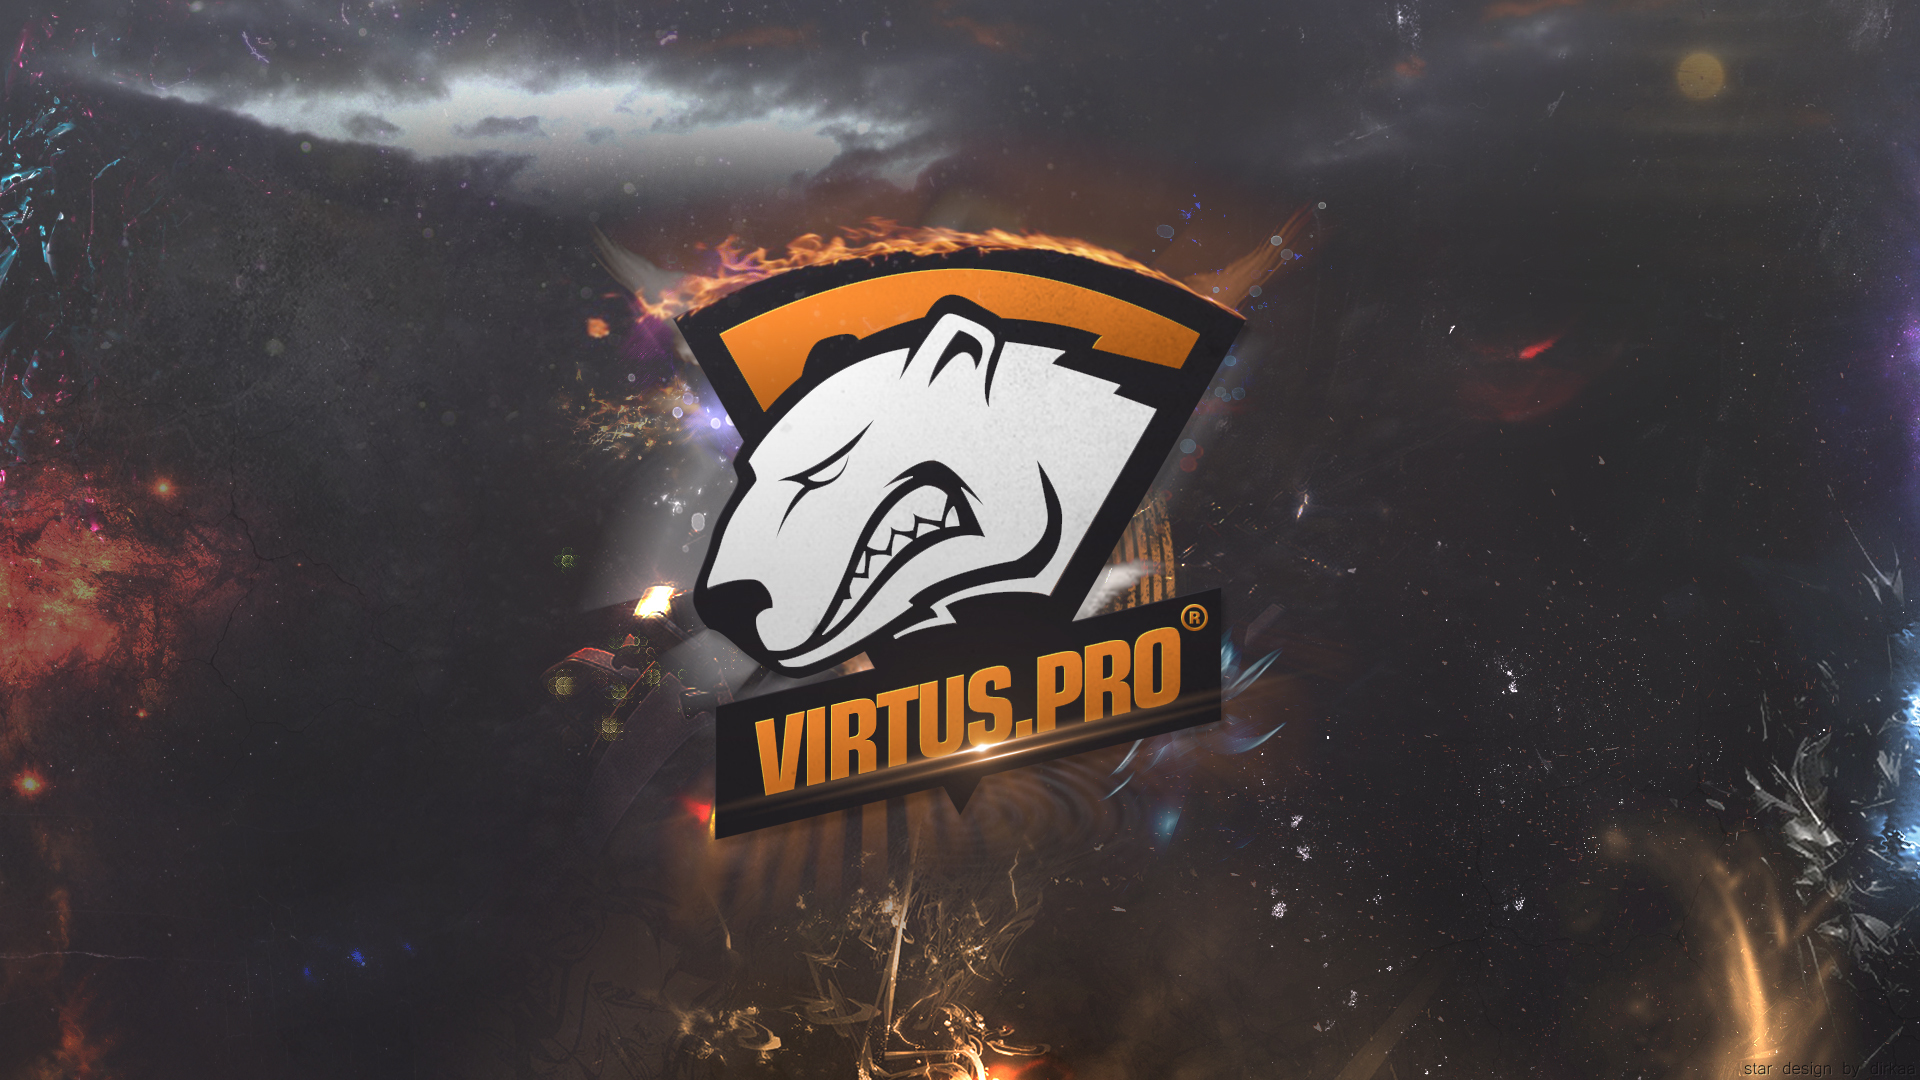 The International, Virtus.pro, Team Secret